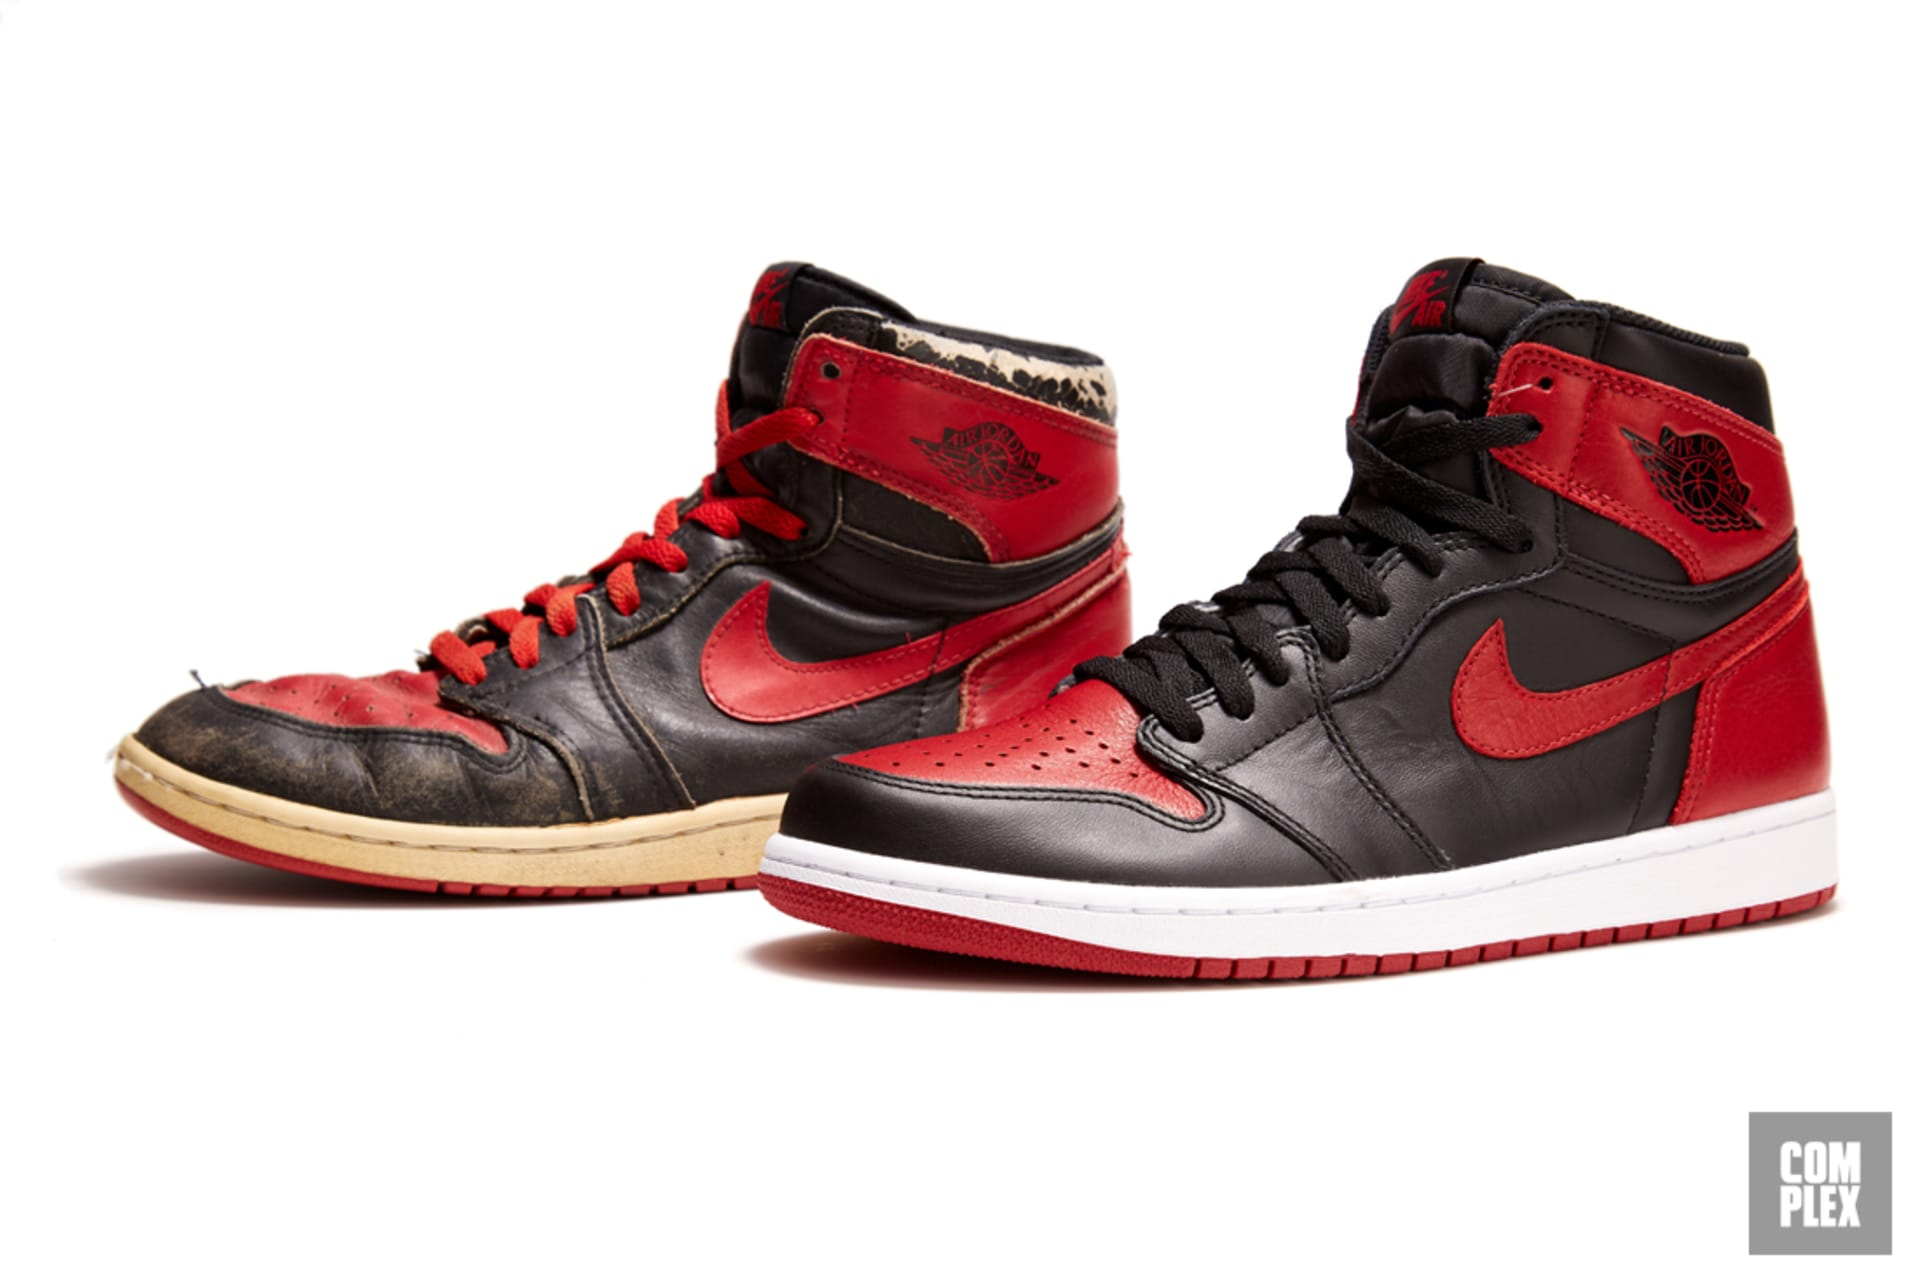 a0a770b08a0e6 The Evolution of the Black and Red Air Jordan 1